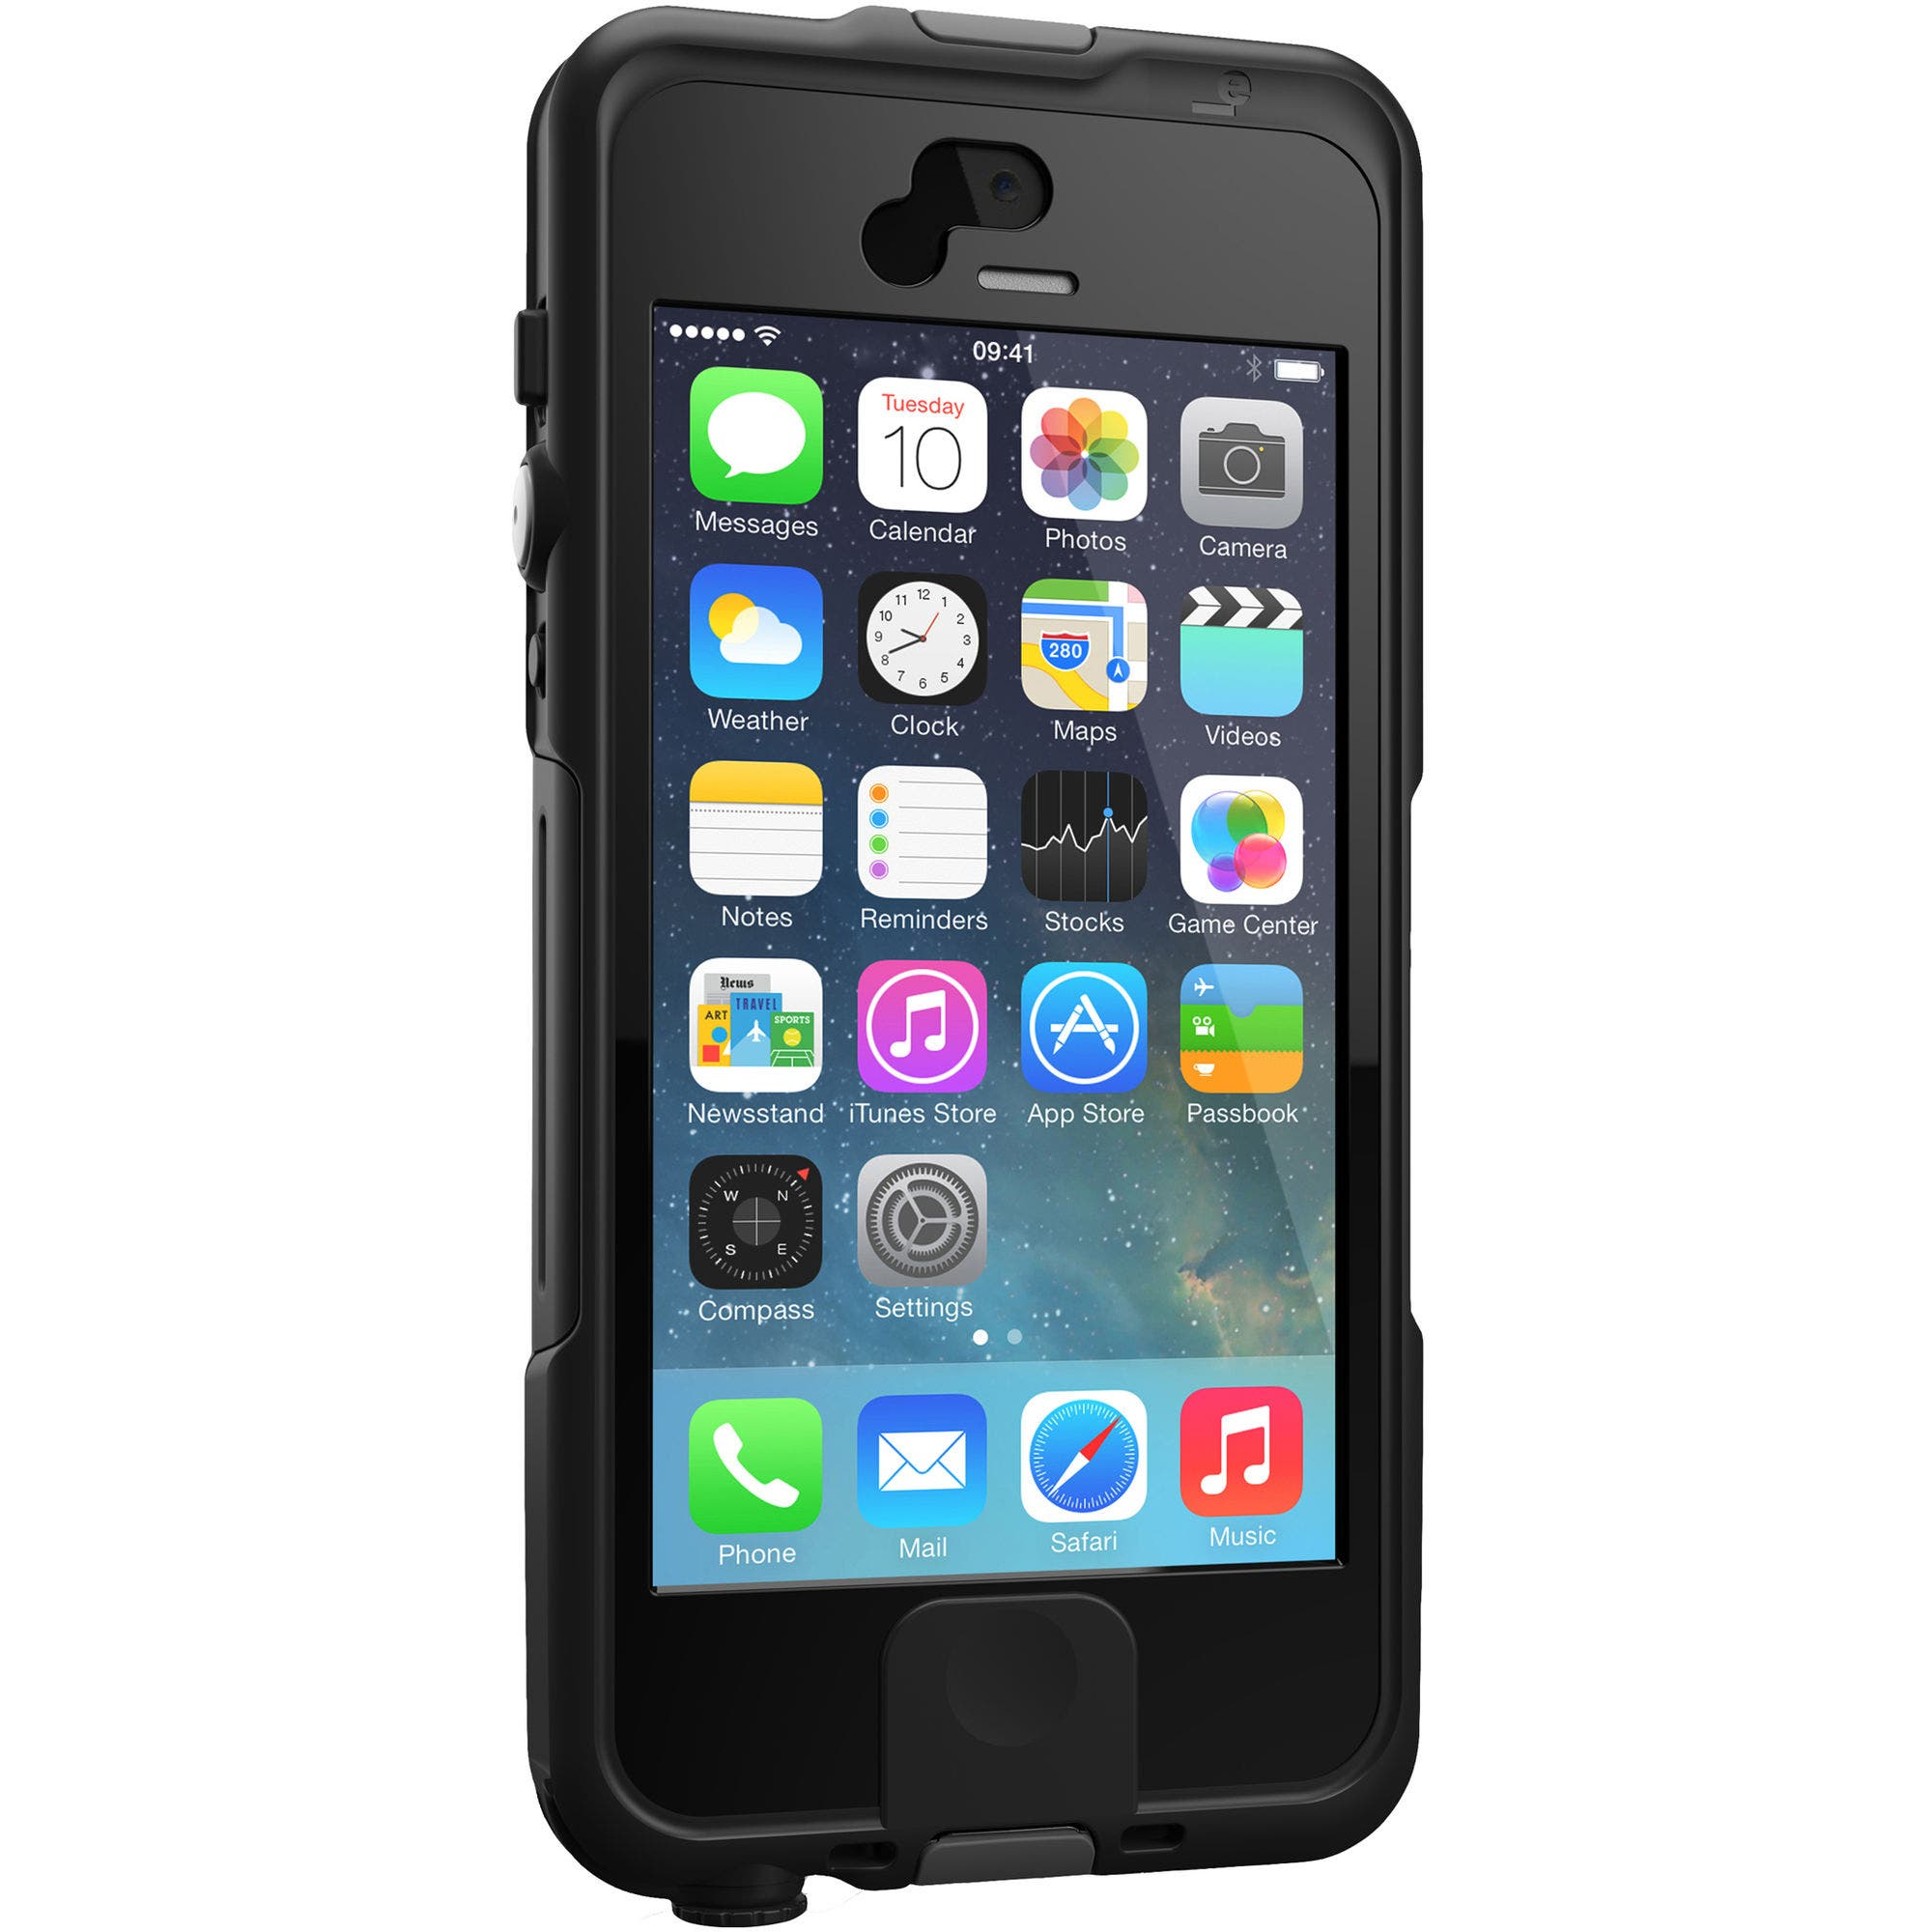 UK Case Maker Lifedge: Offering Waterproof, Heavy-Duty Protection for iDevices.